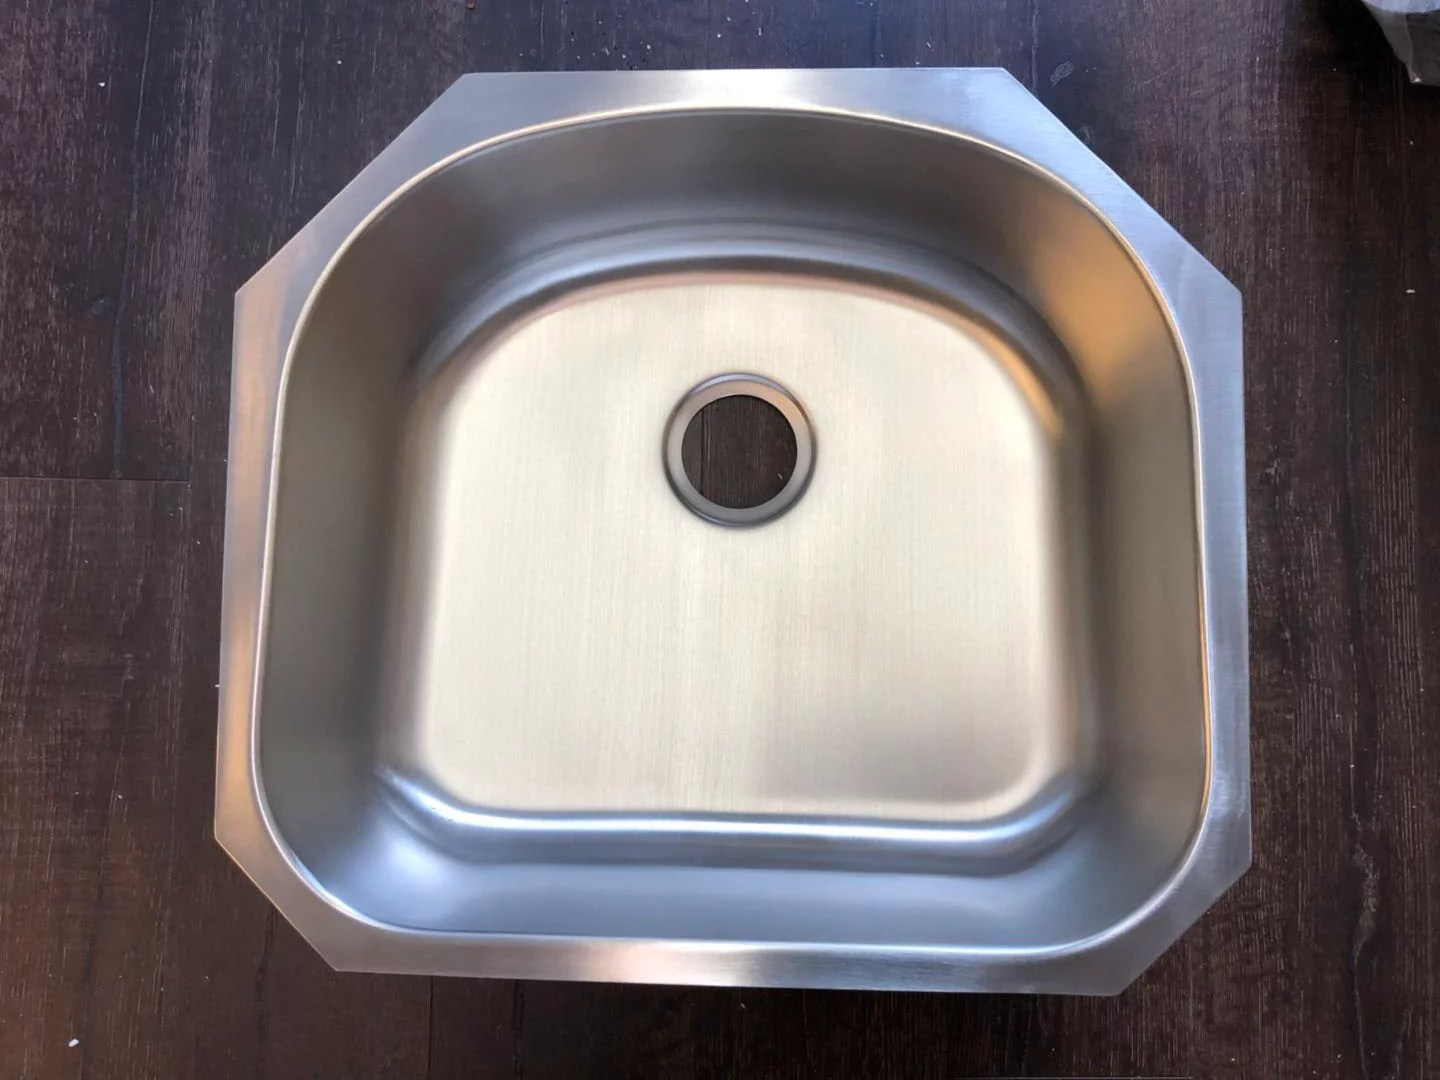 u2321 23 x21 x8 stainless steel single bowl undermount laundry sink byouhome